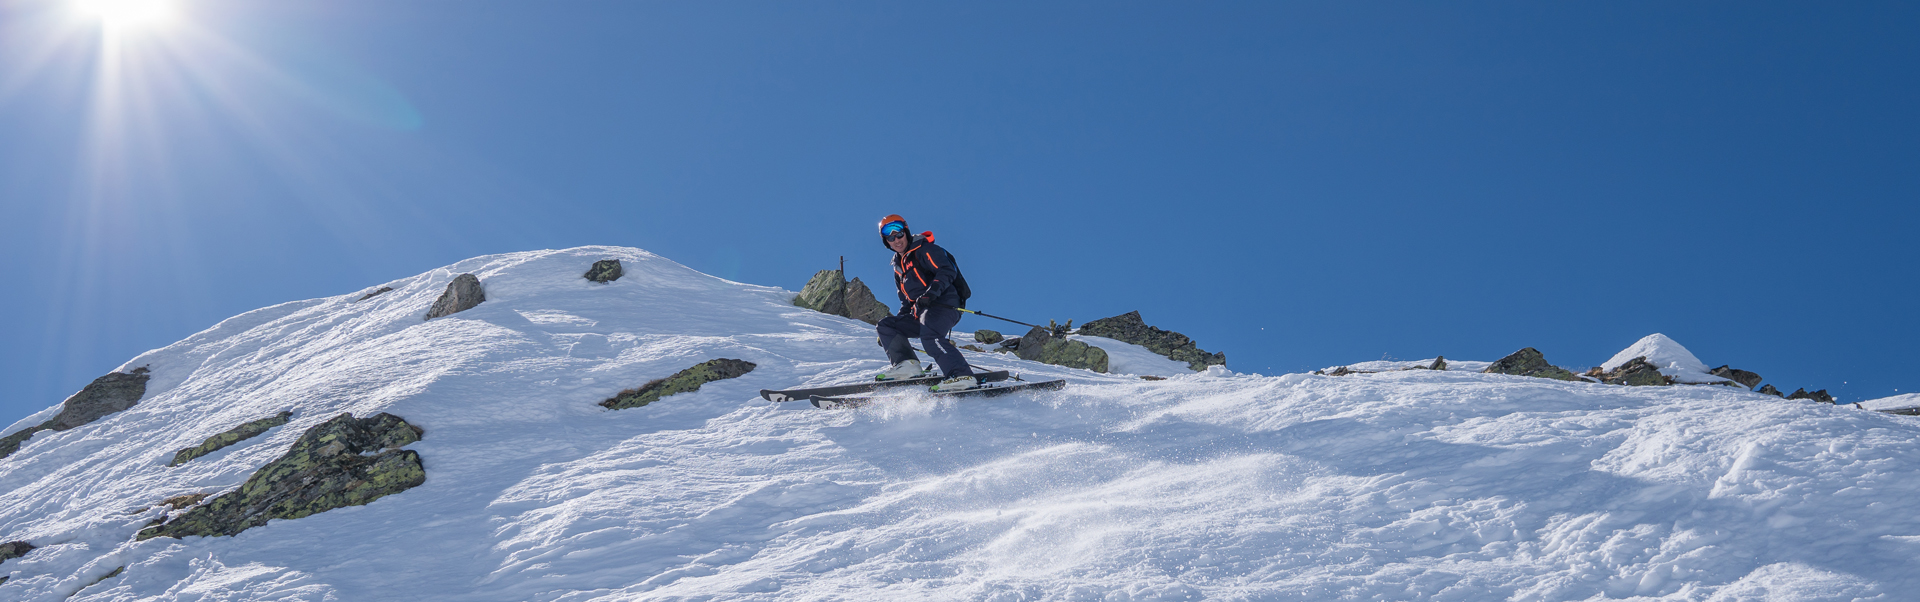 Mountain Guide -                                          Skiing and snowboarding Instructor